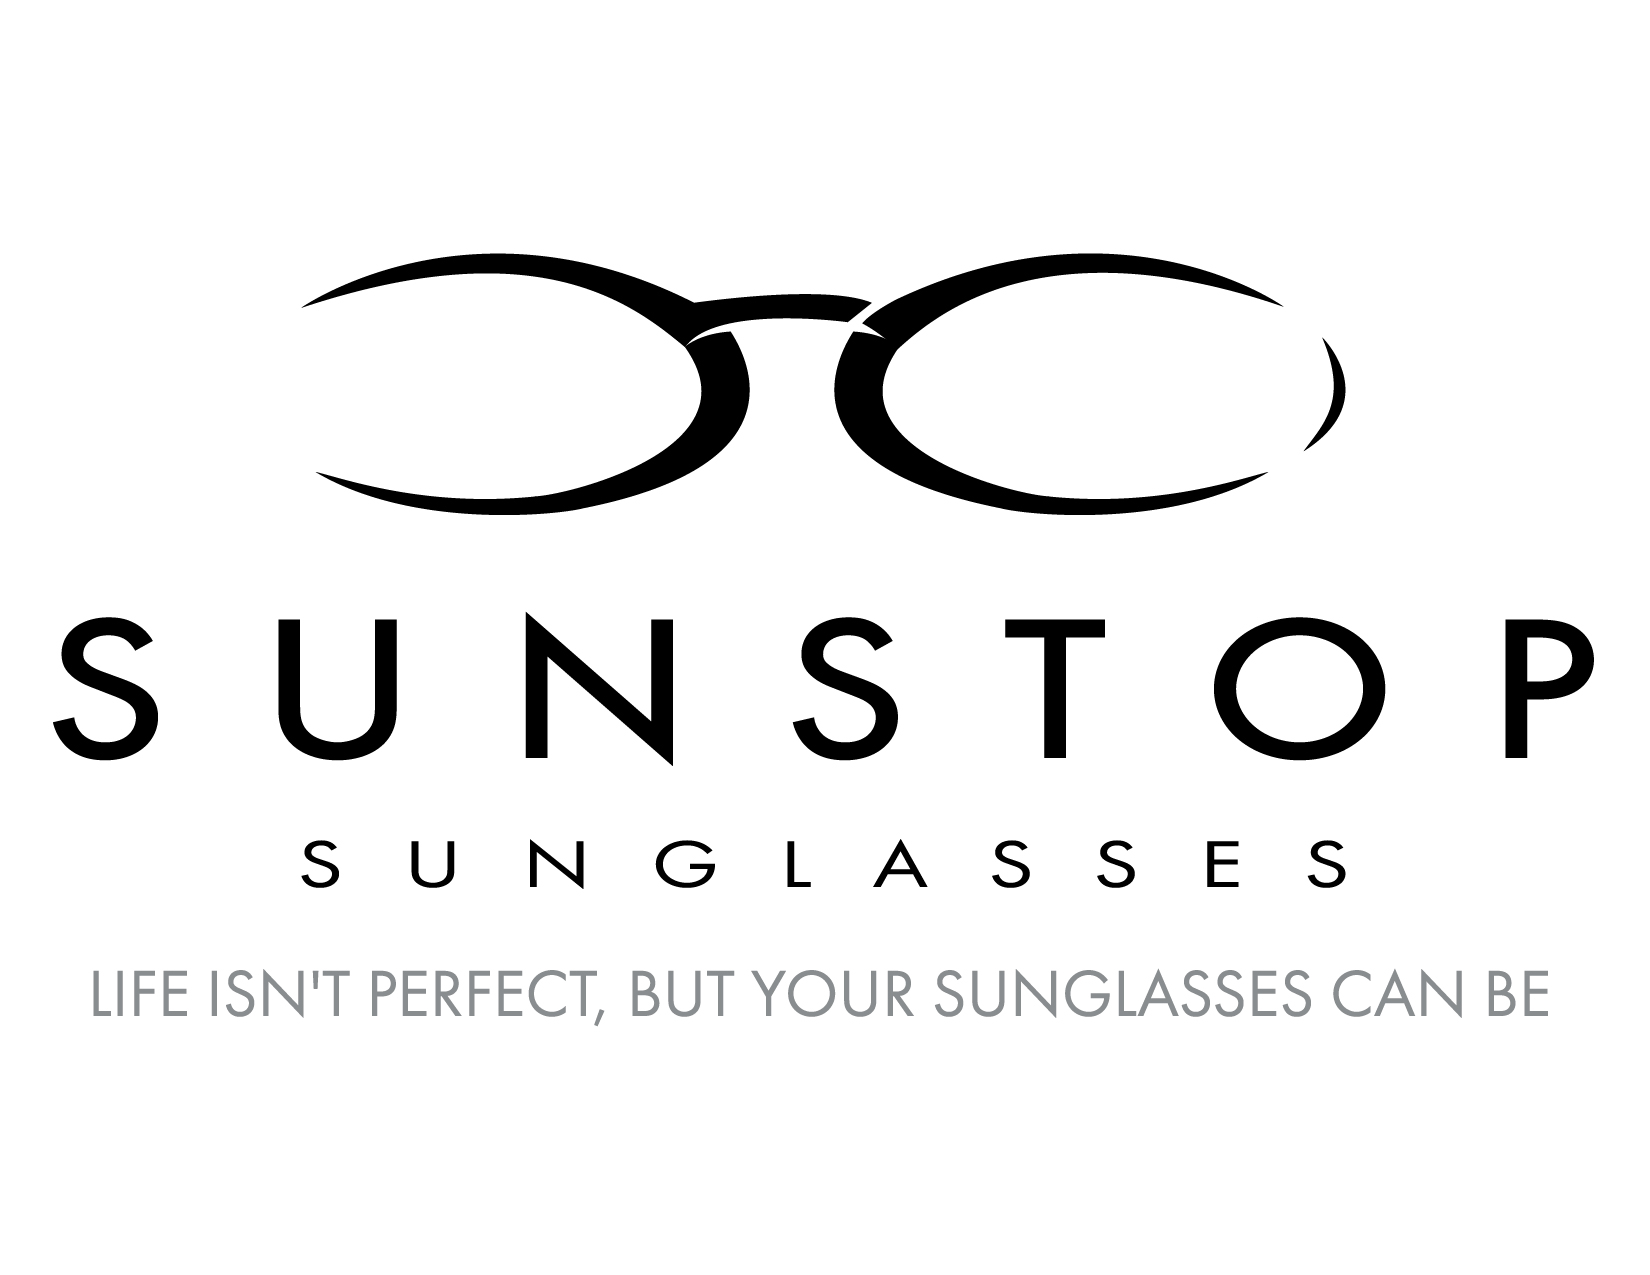 Sun Stop Sunglasses